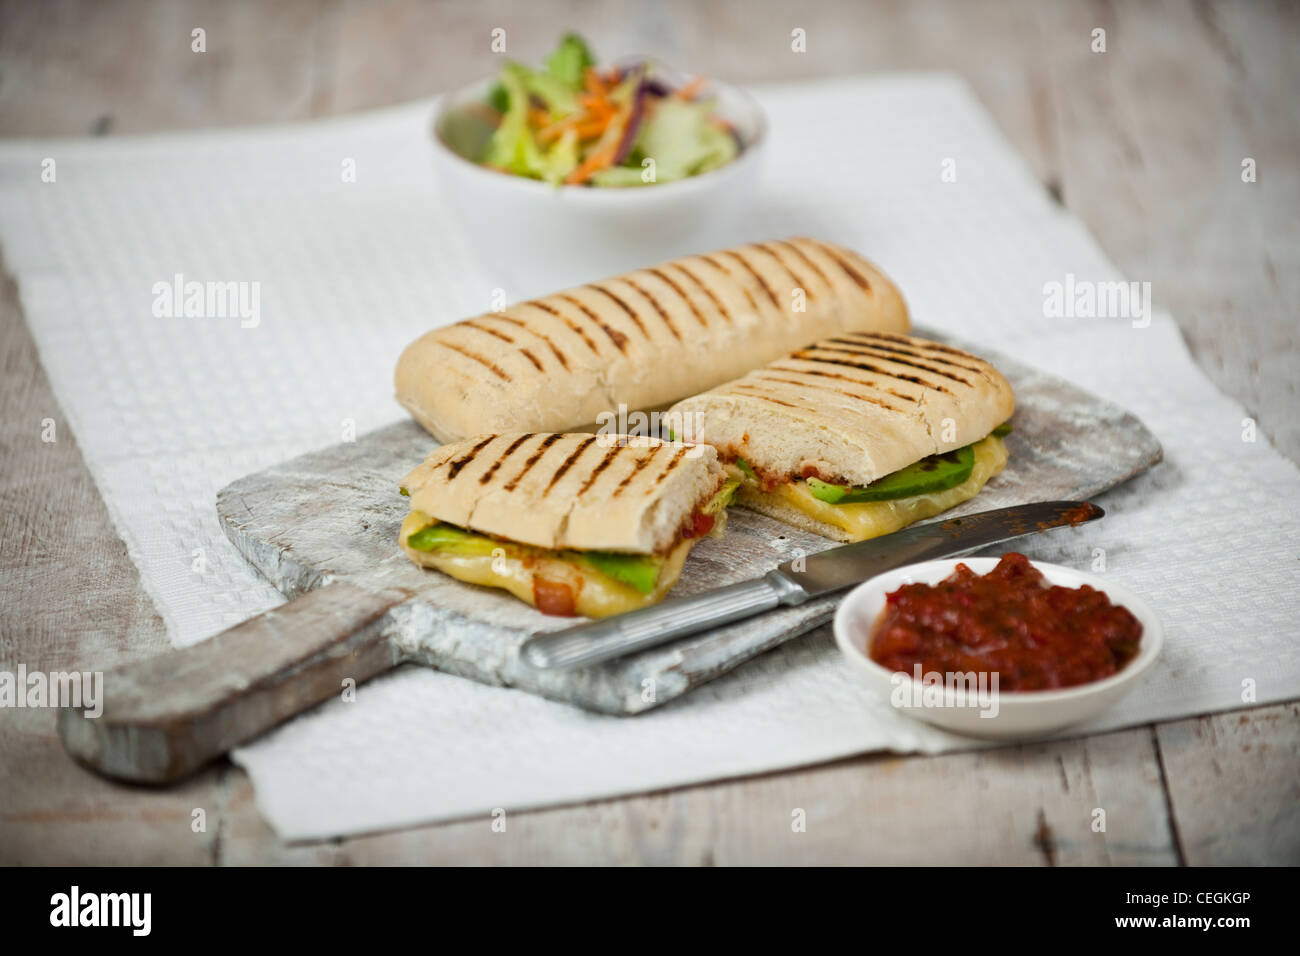 Toasted cheese and avocado panini - Stock Image